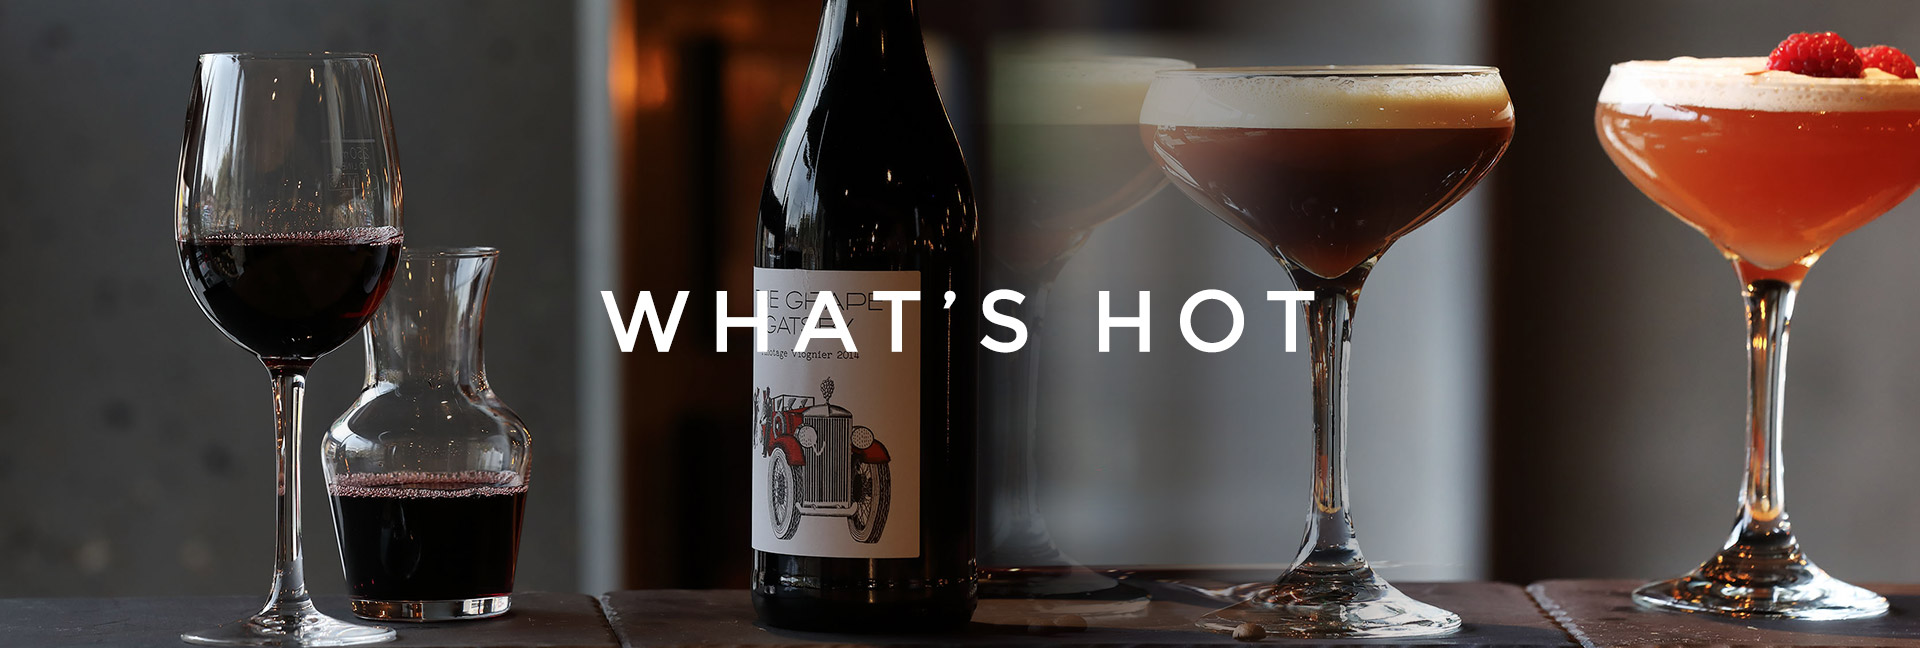 What's Hot at All Bar One Chiswell Street